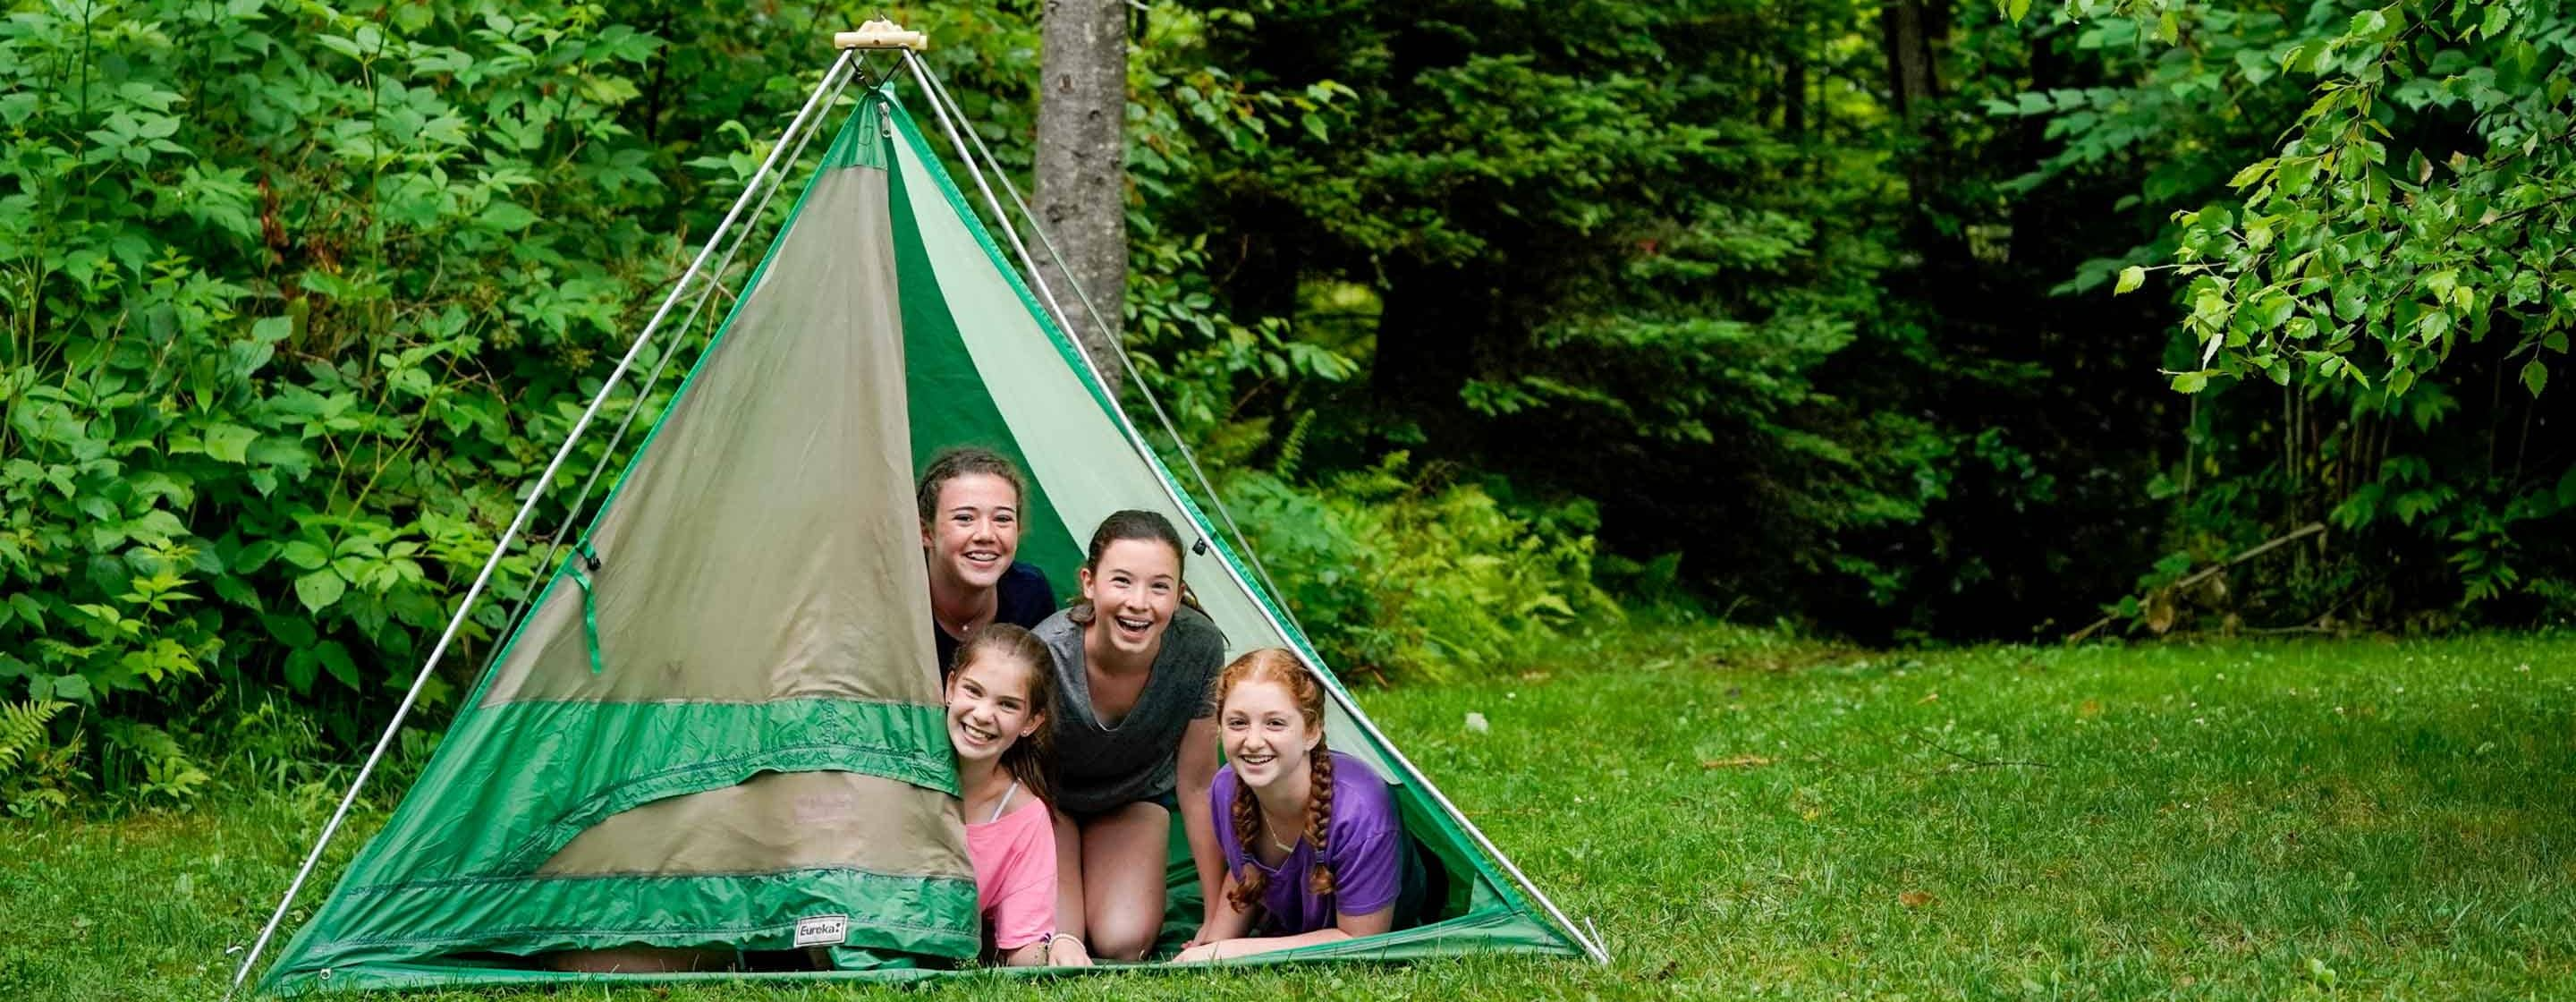 4 young girls peaking out from a tent in a forest